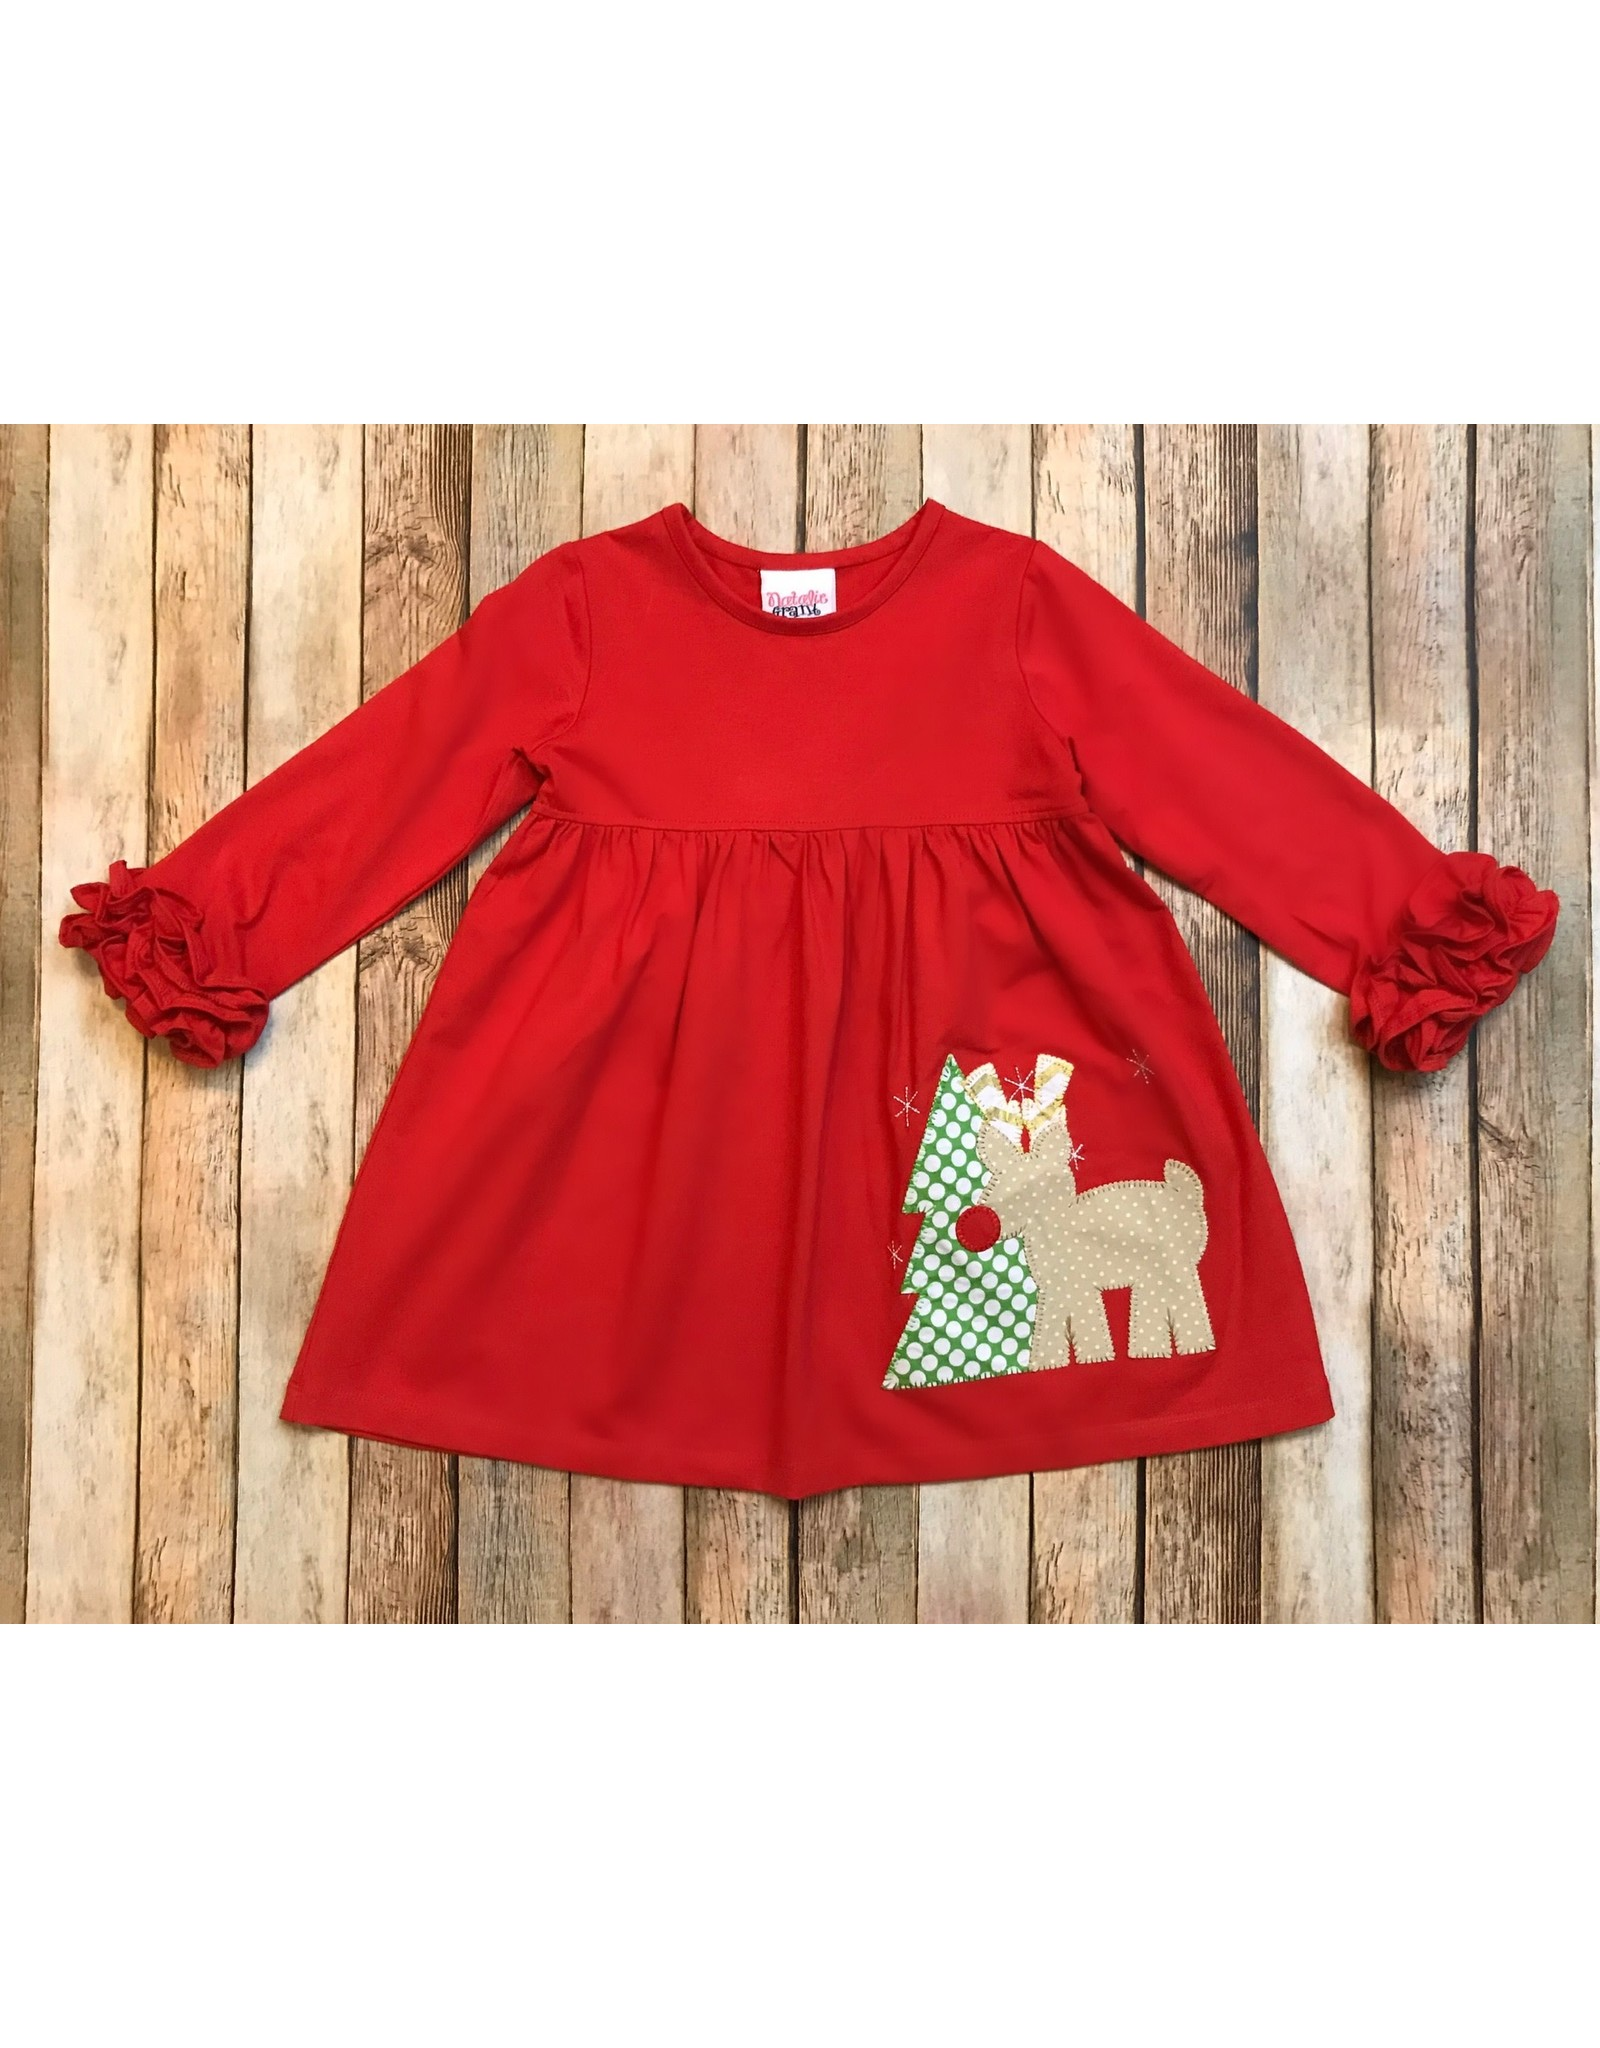 Natalie Grant- Reindeer Dress